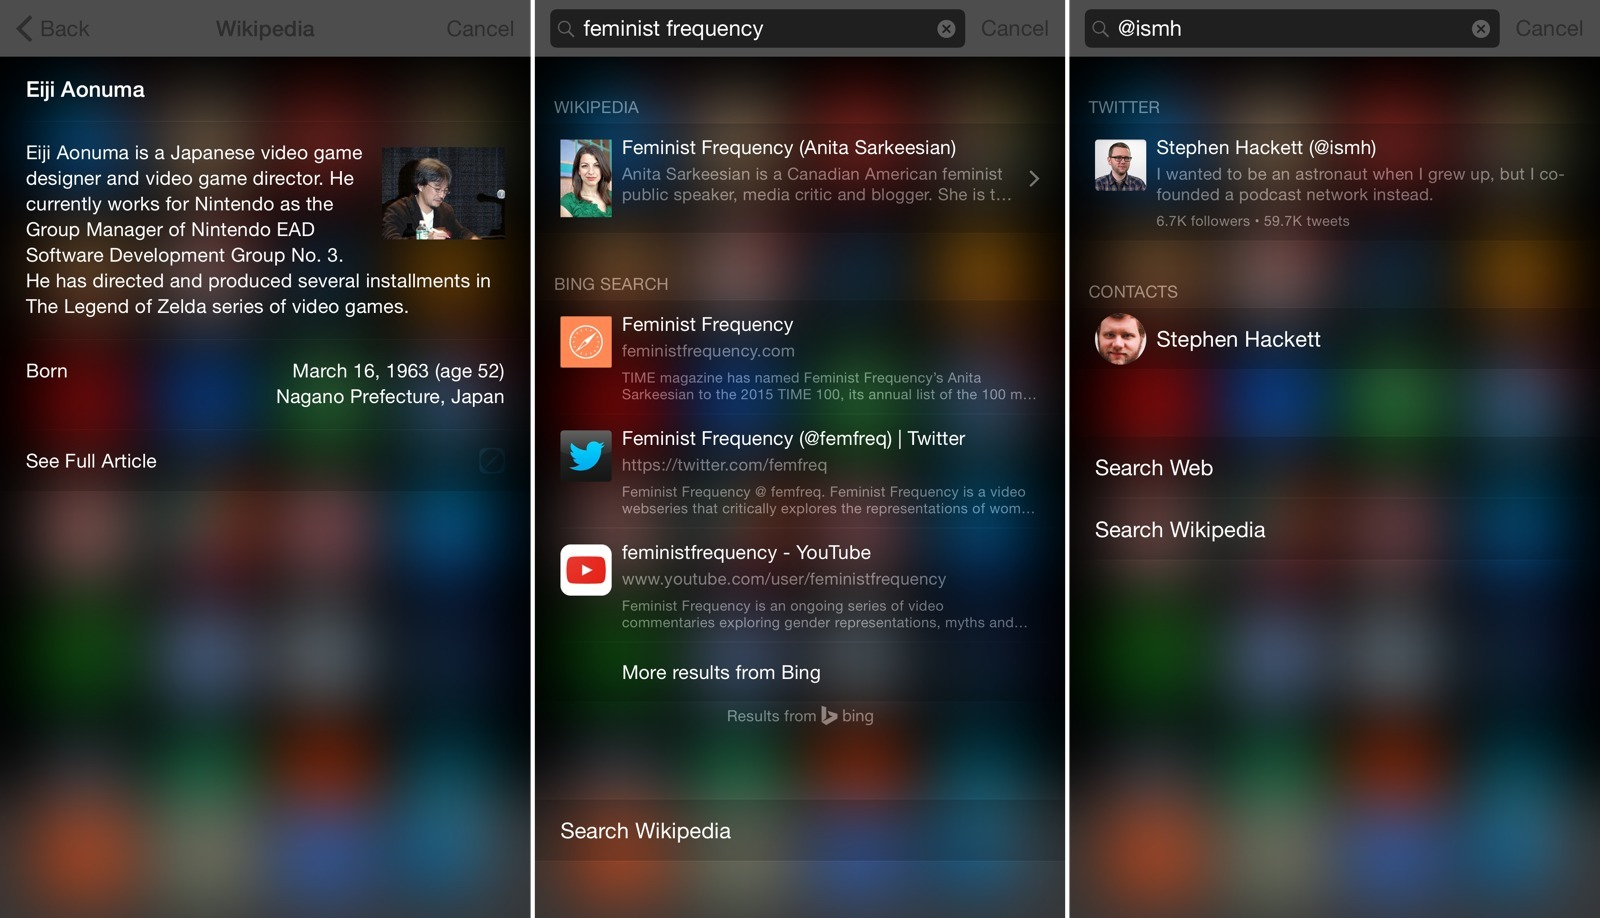 Examples of Spotlight results in iOS 8.4.